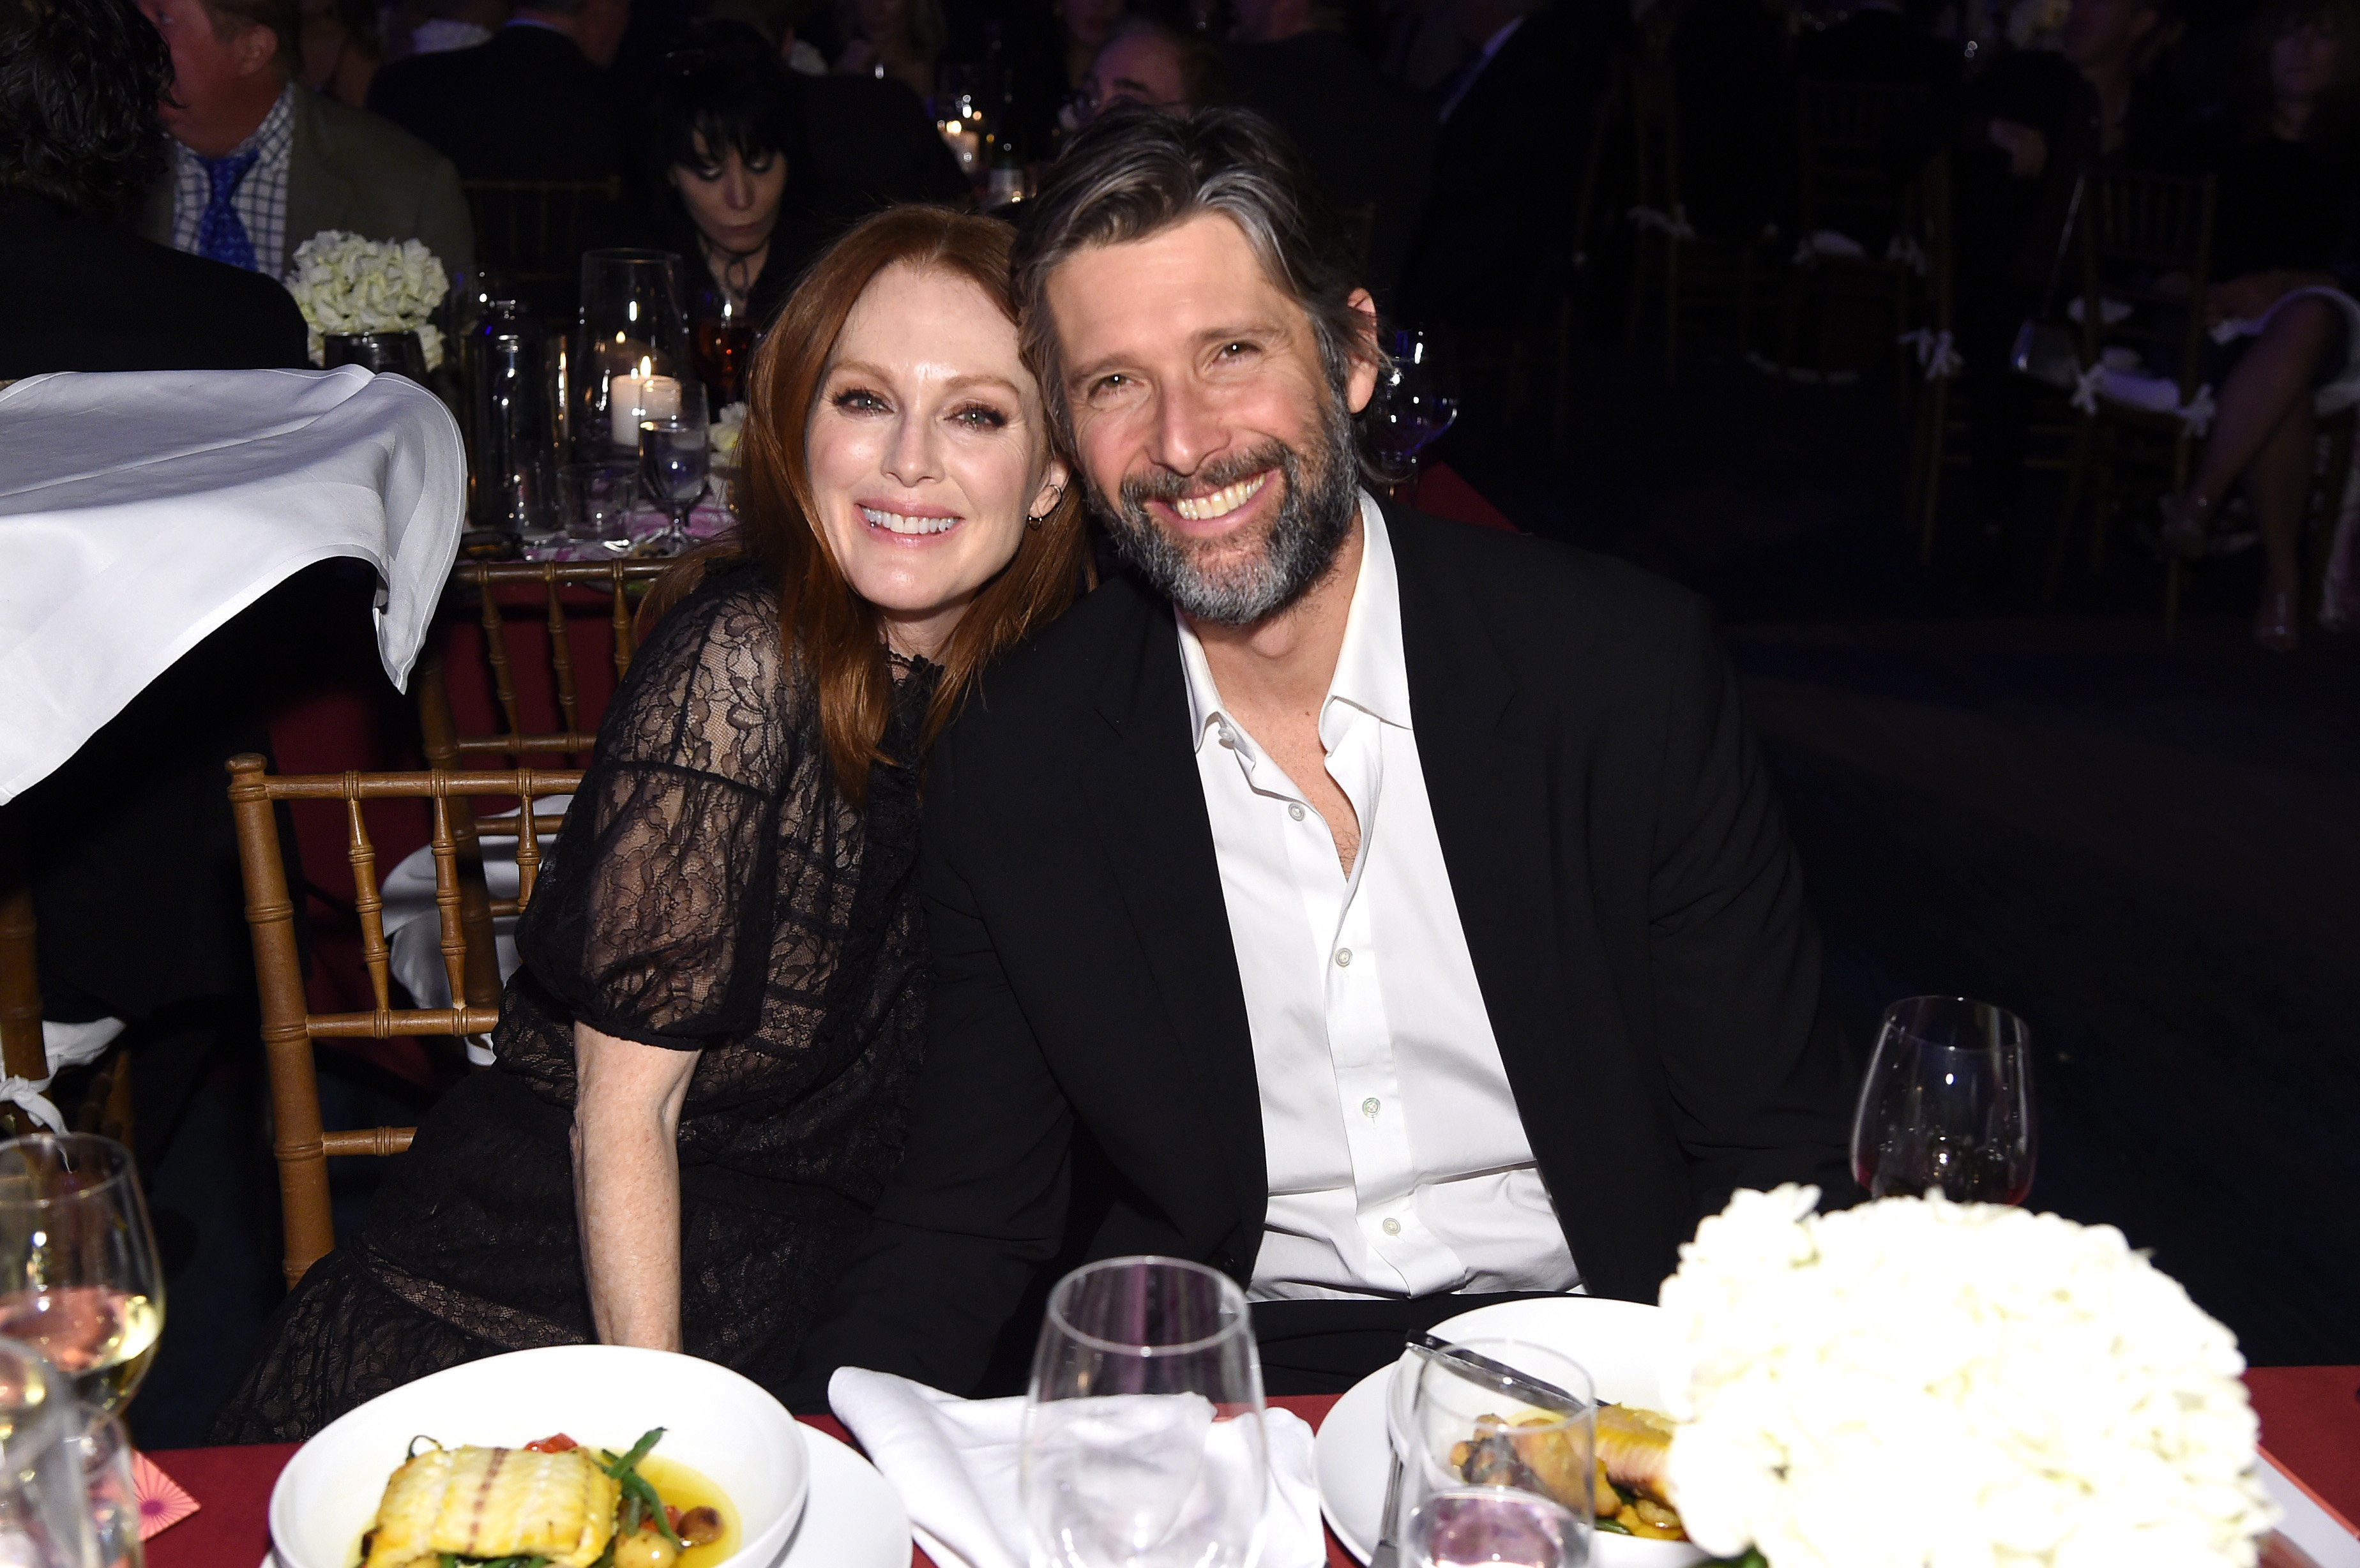 Julianne Moore and Bart Freundlich attend the event A Funny Thing Happened On The Way To Cure Parkinson's in New York City on November 16, 2019 | Photo: Getty Images